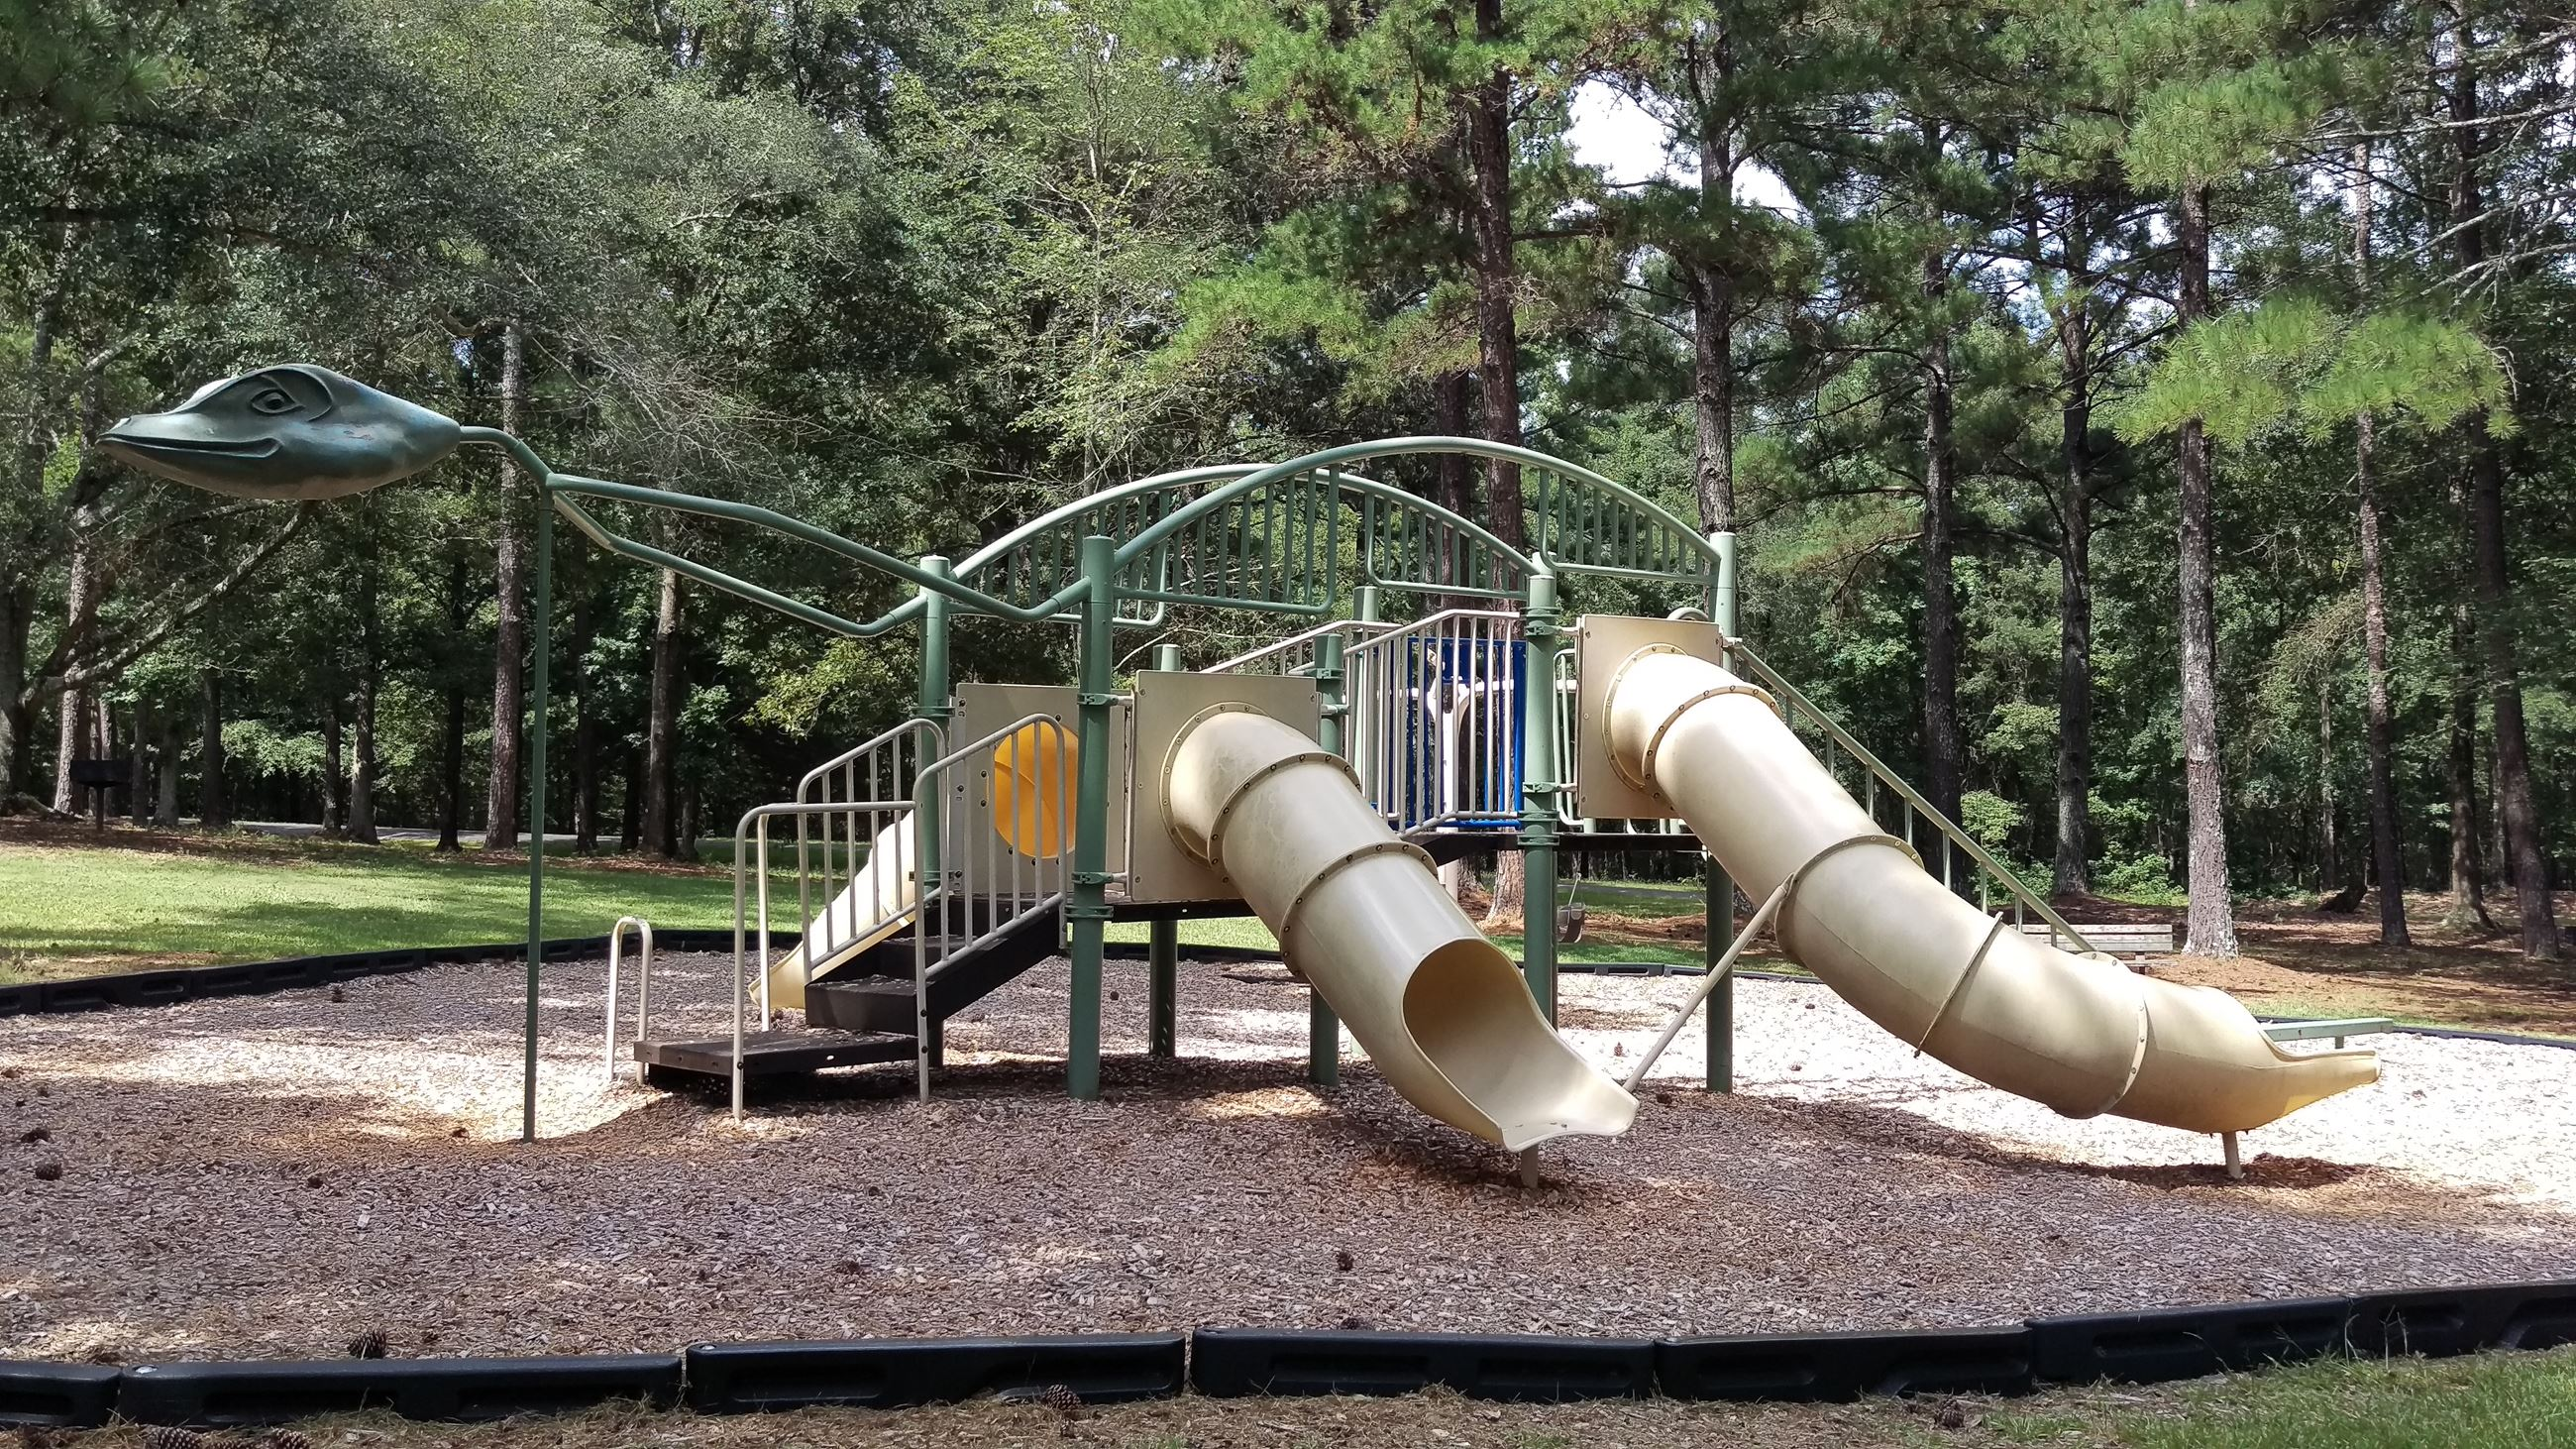 Photo of Playground 2 at Sandy Creek Park.